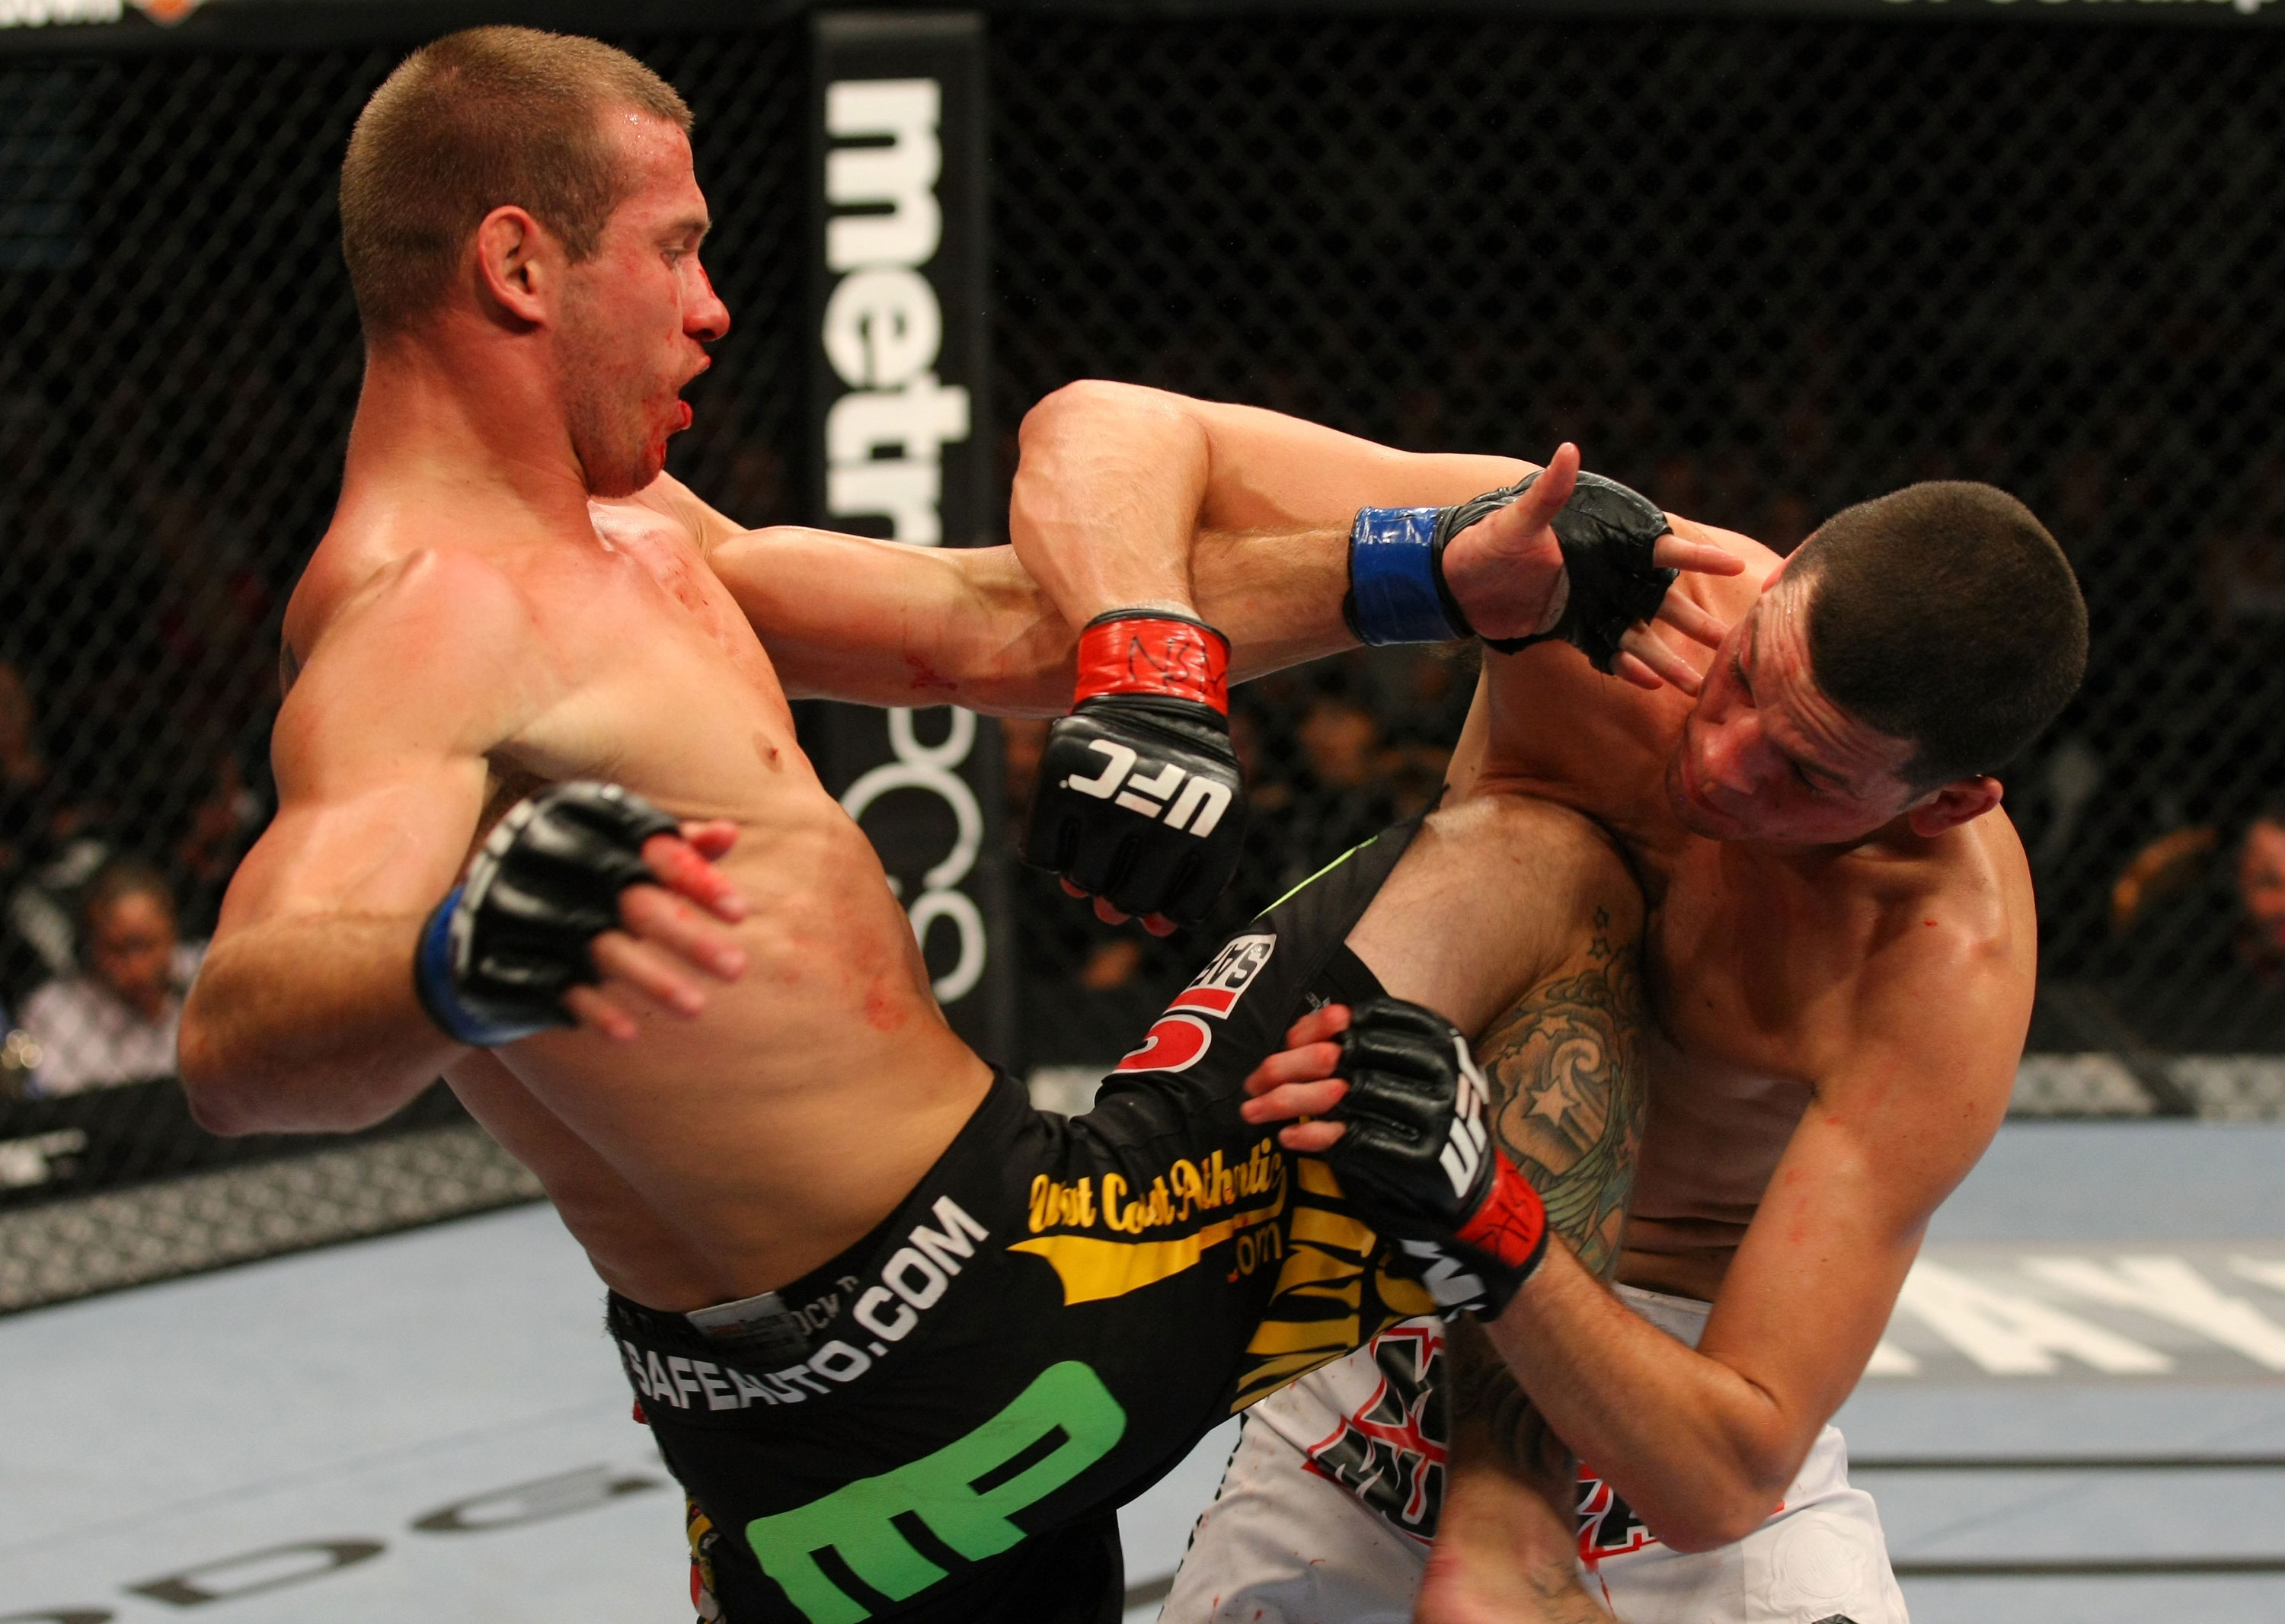 LAS VEGAS, NV - DECEMBER 30:  Donald Cerrone (left) hits Nate Diaz with a knee strike during the UFC 141 event at the MGM Grand Garden Arena on December 30, 2011 in Las Vegas, Nevada.  (Photo by Donald Miralle/Zuffa LLC/Zuffa LLC via Getty Images) *** Local Caption *** Donald Cerrone; Nate Diaz